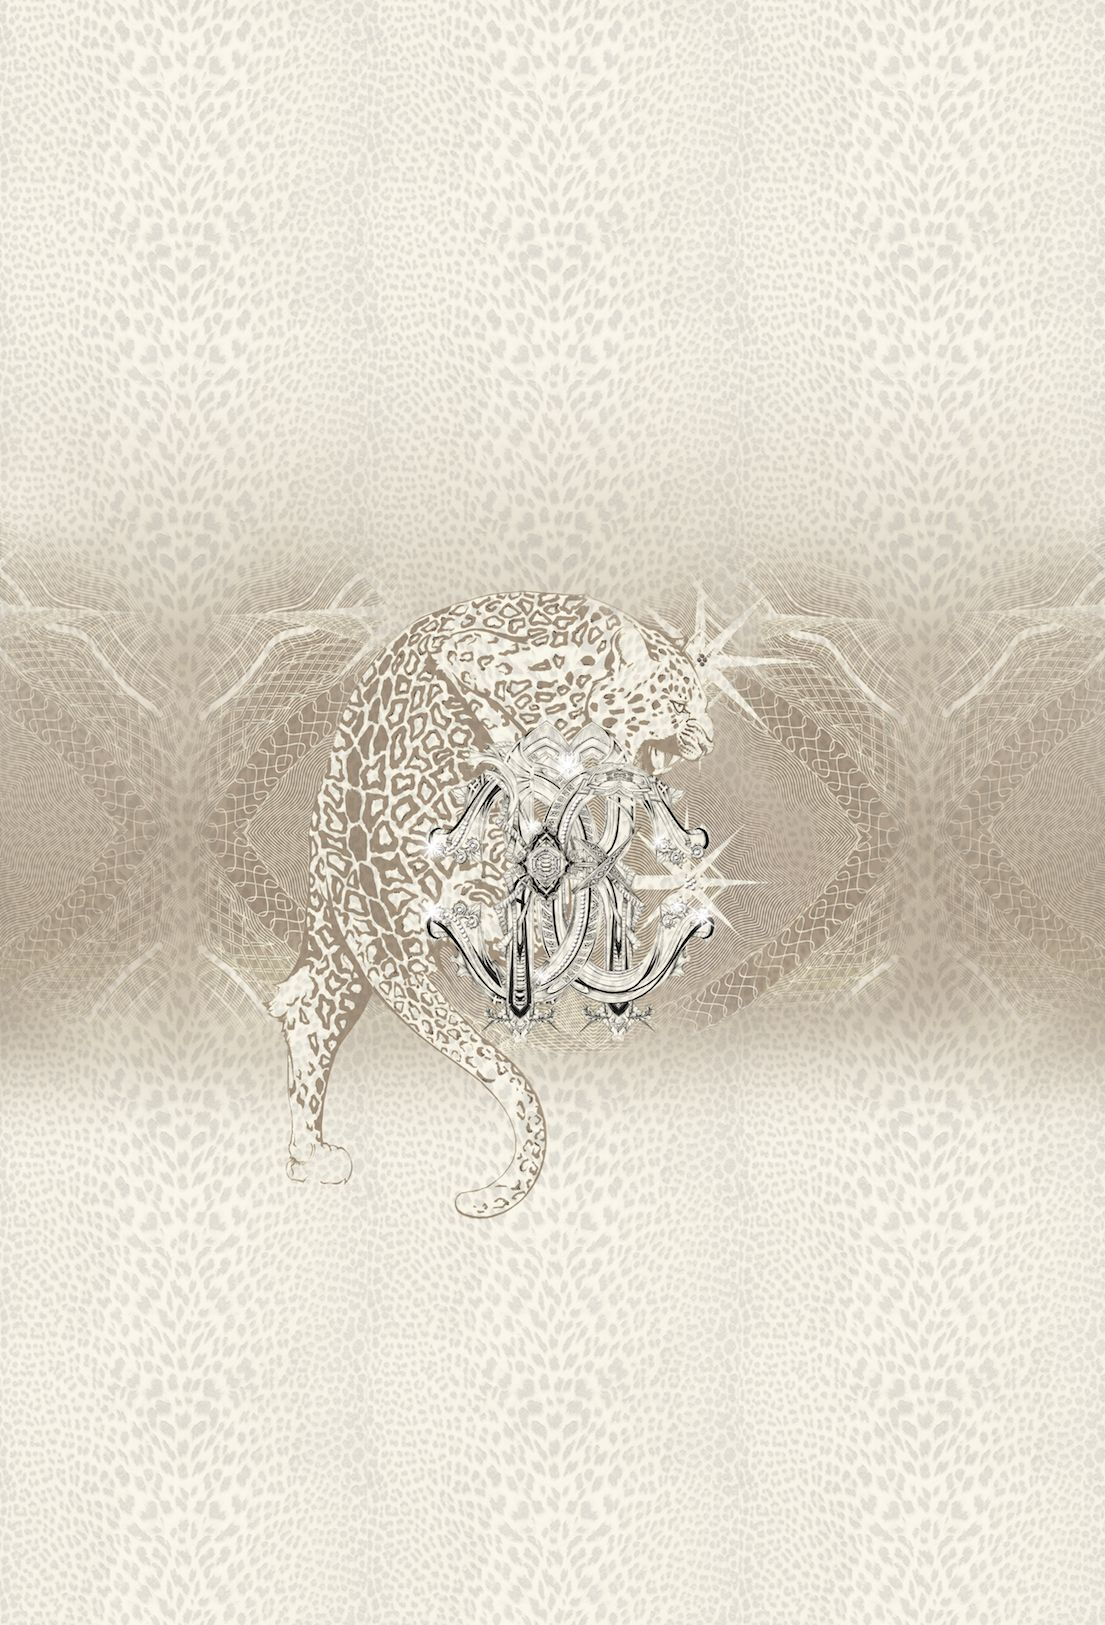 Roberto Cavalli Wallpaper   See more at Kings of Chelsea the 1105x1625